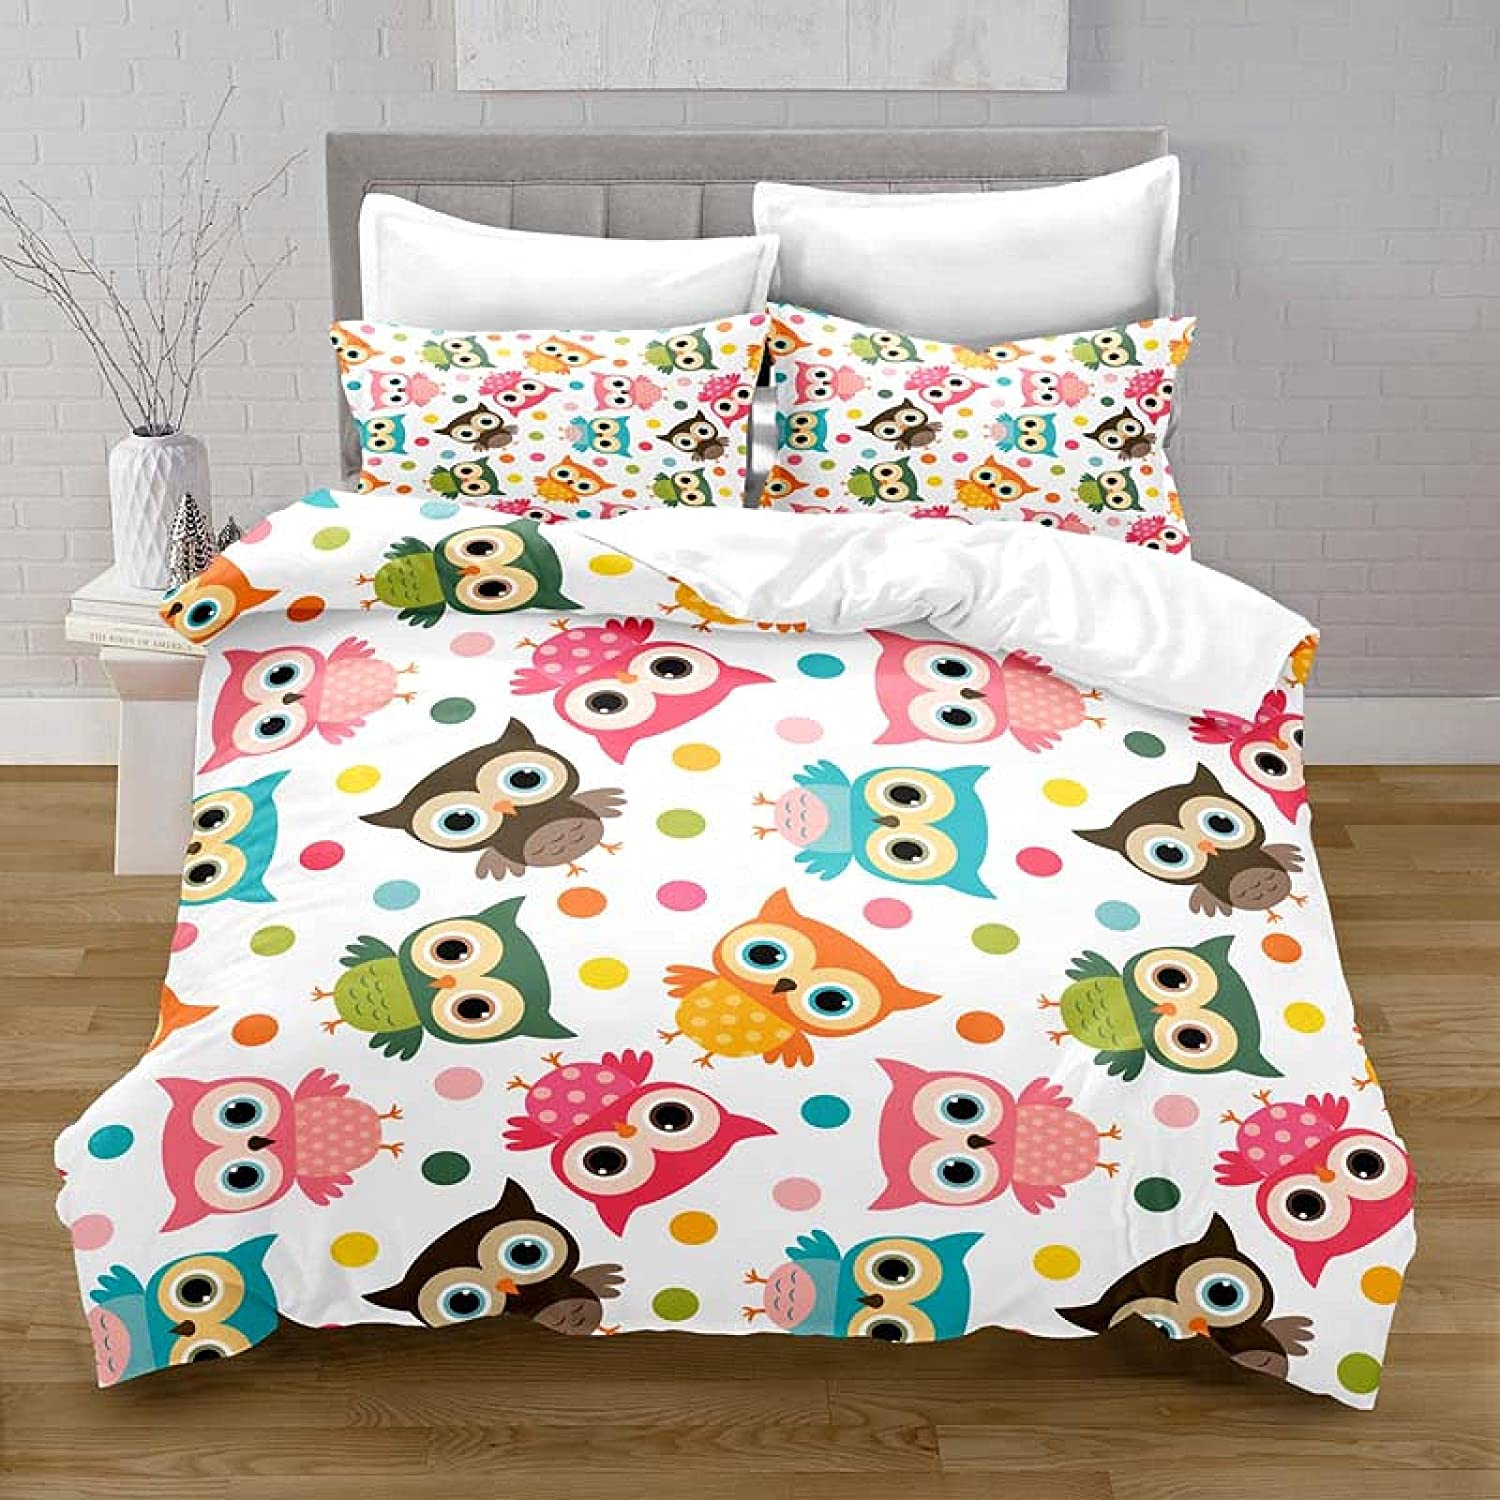 HQHM Duvet Cover King 3 Pieces Over item handling ☆ Inc Cute Cartoon Owl Animal Bombing new work 87X94